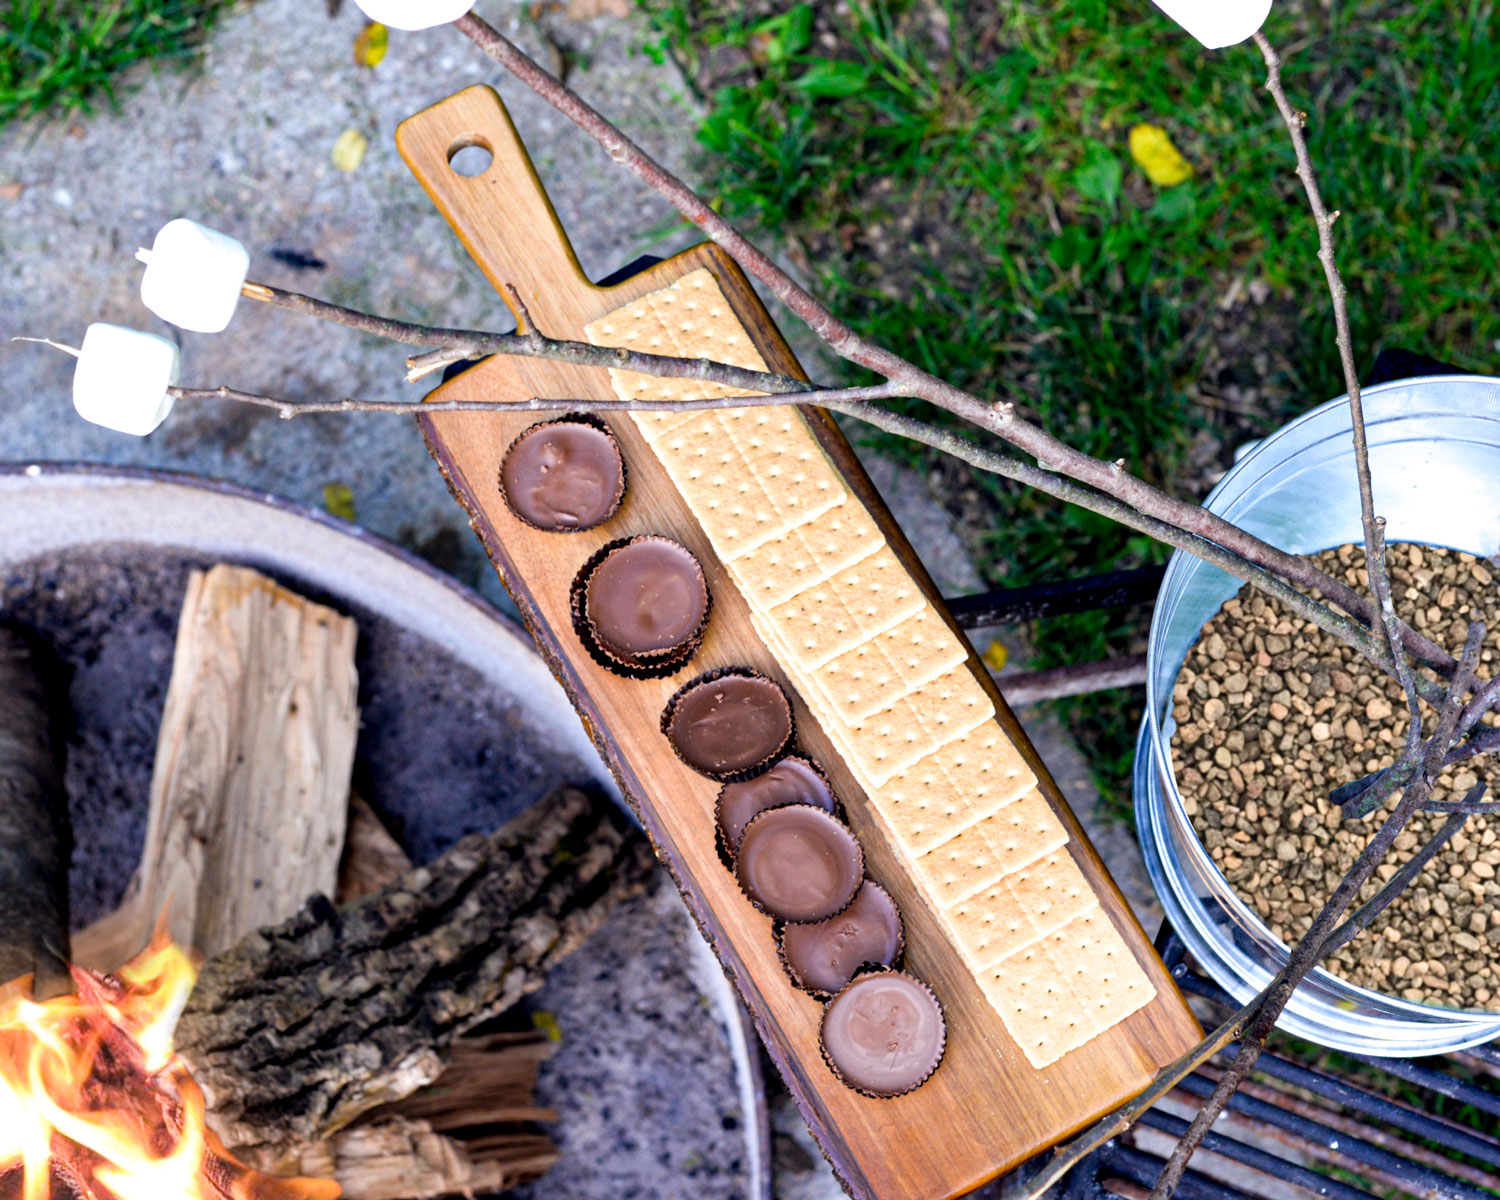 Smores by the campfire with TableCraft